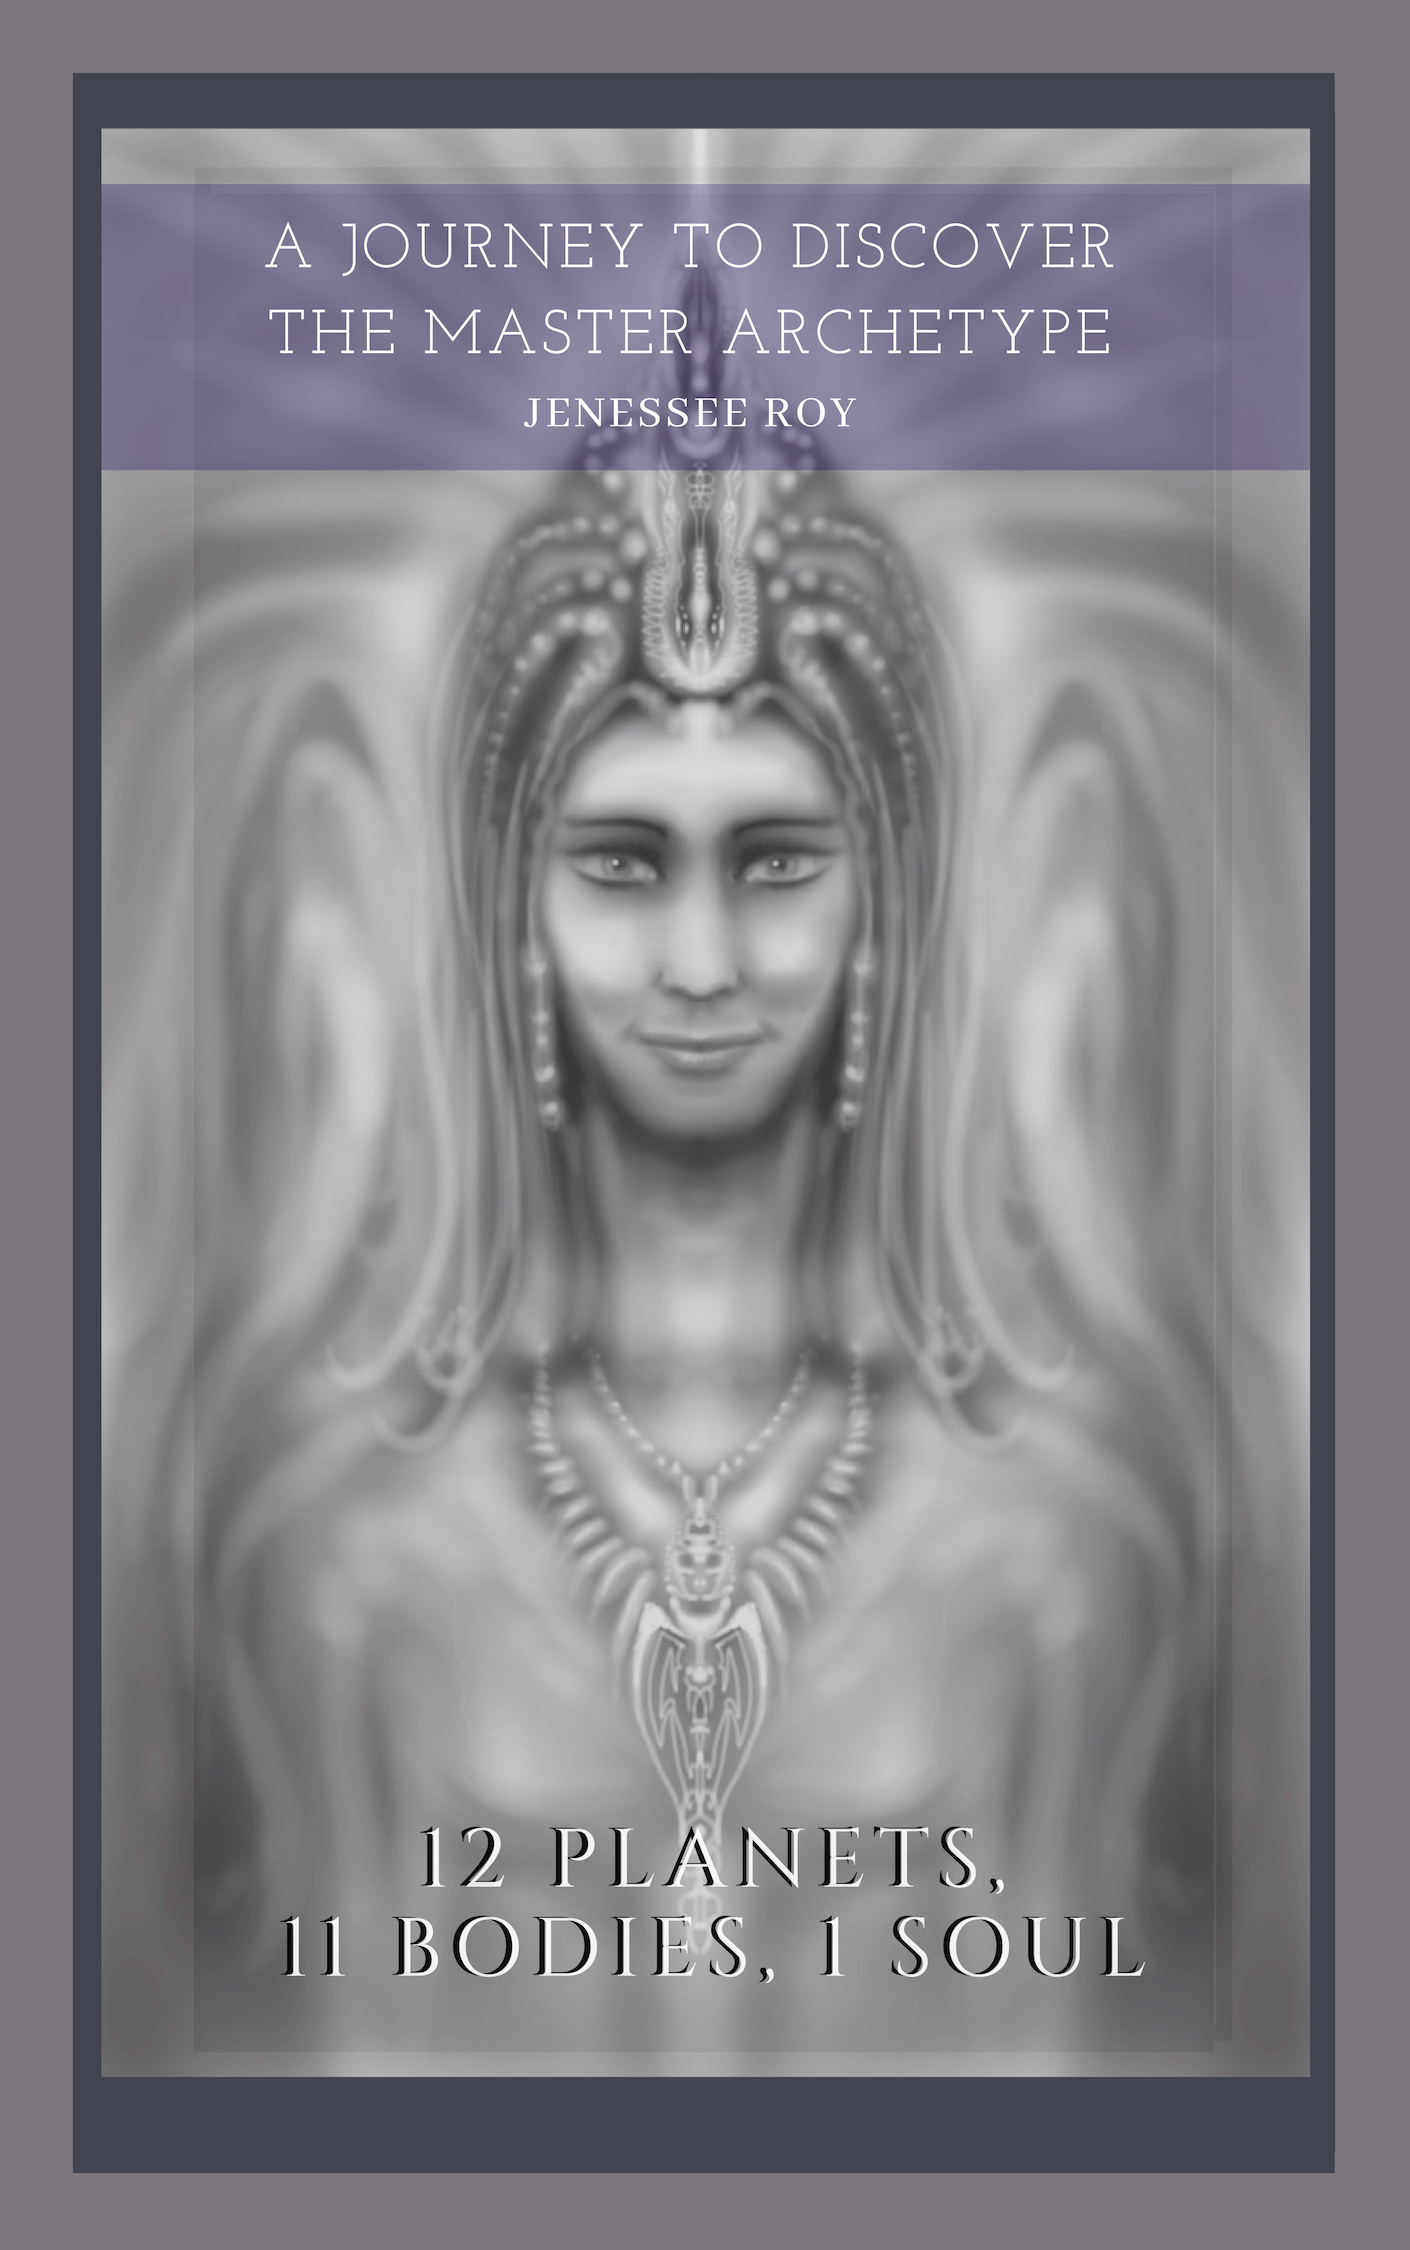 5th DimensionBOOK THREEAscension Series - This journey takes you on a visually stunning exploration of different planets. Each new planet introduces Jenessee to a new body which has been frozen to teach her different lessons about her soul's master archetype. Throughout the journey